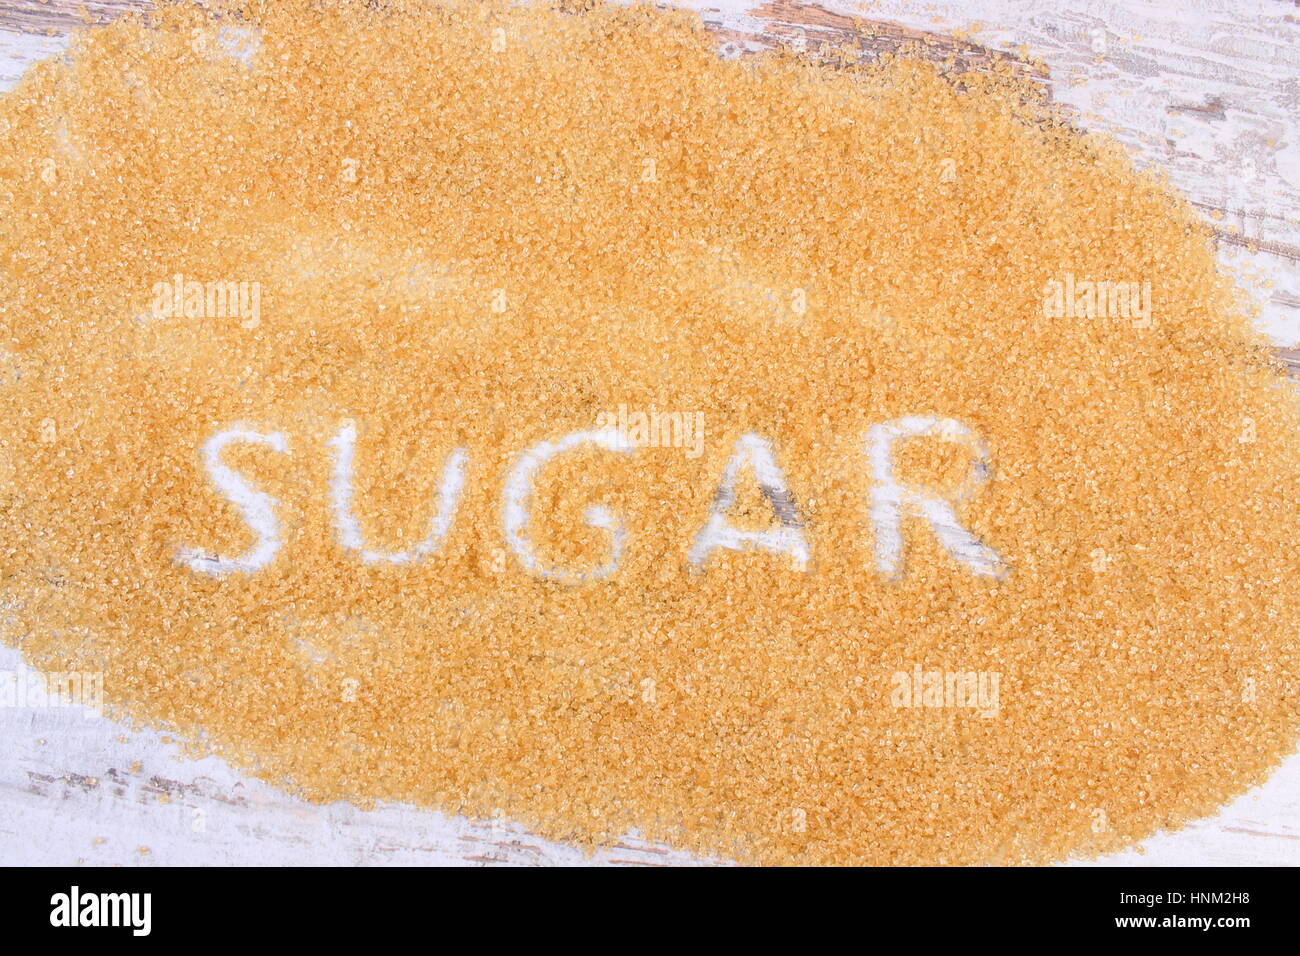 Word sugar written in granulated natural brown cane sugar - Stock Image